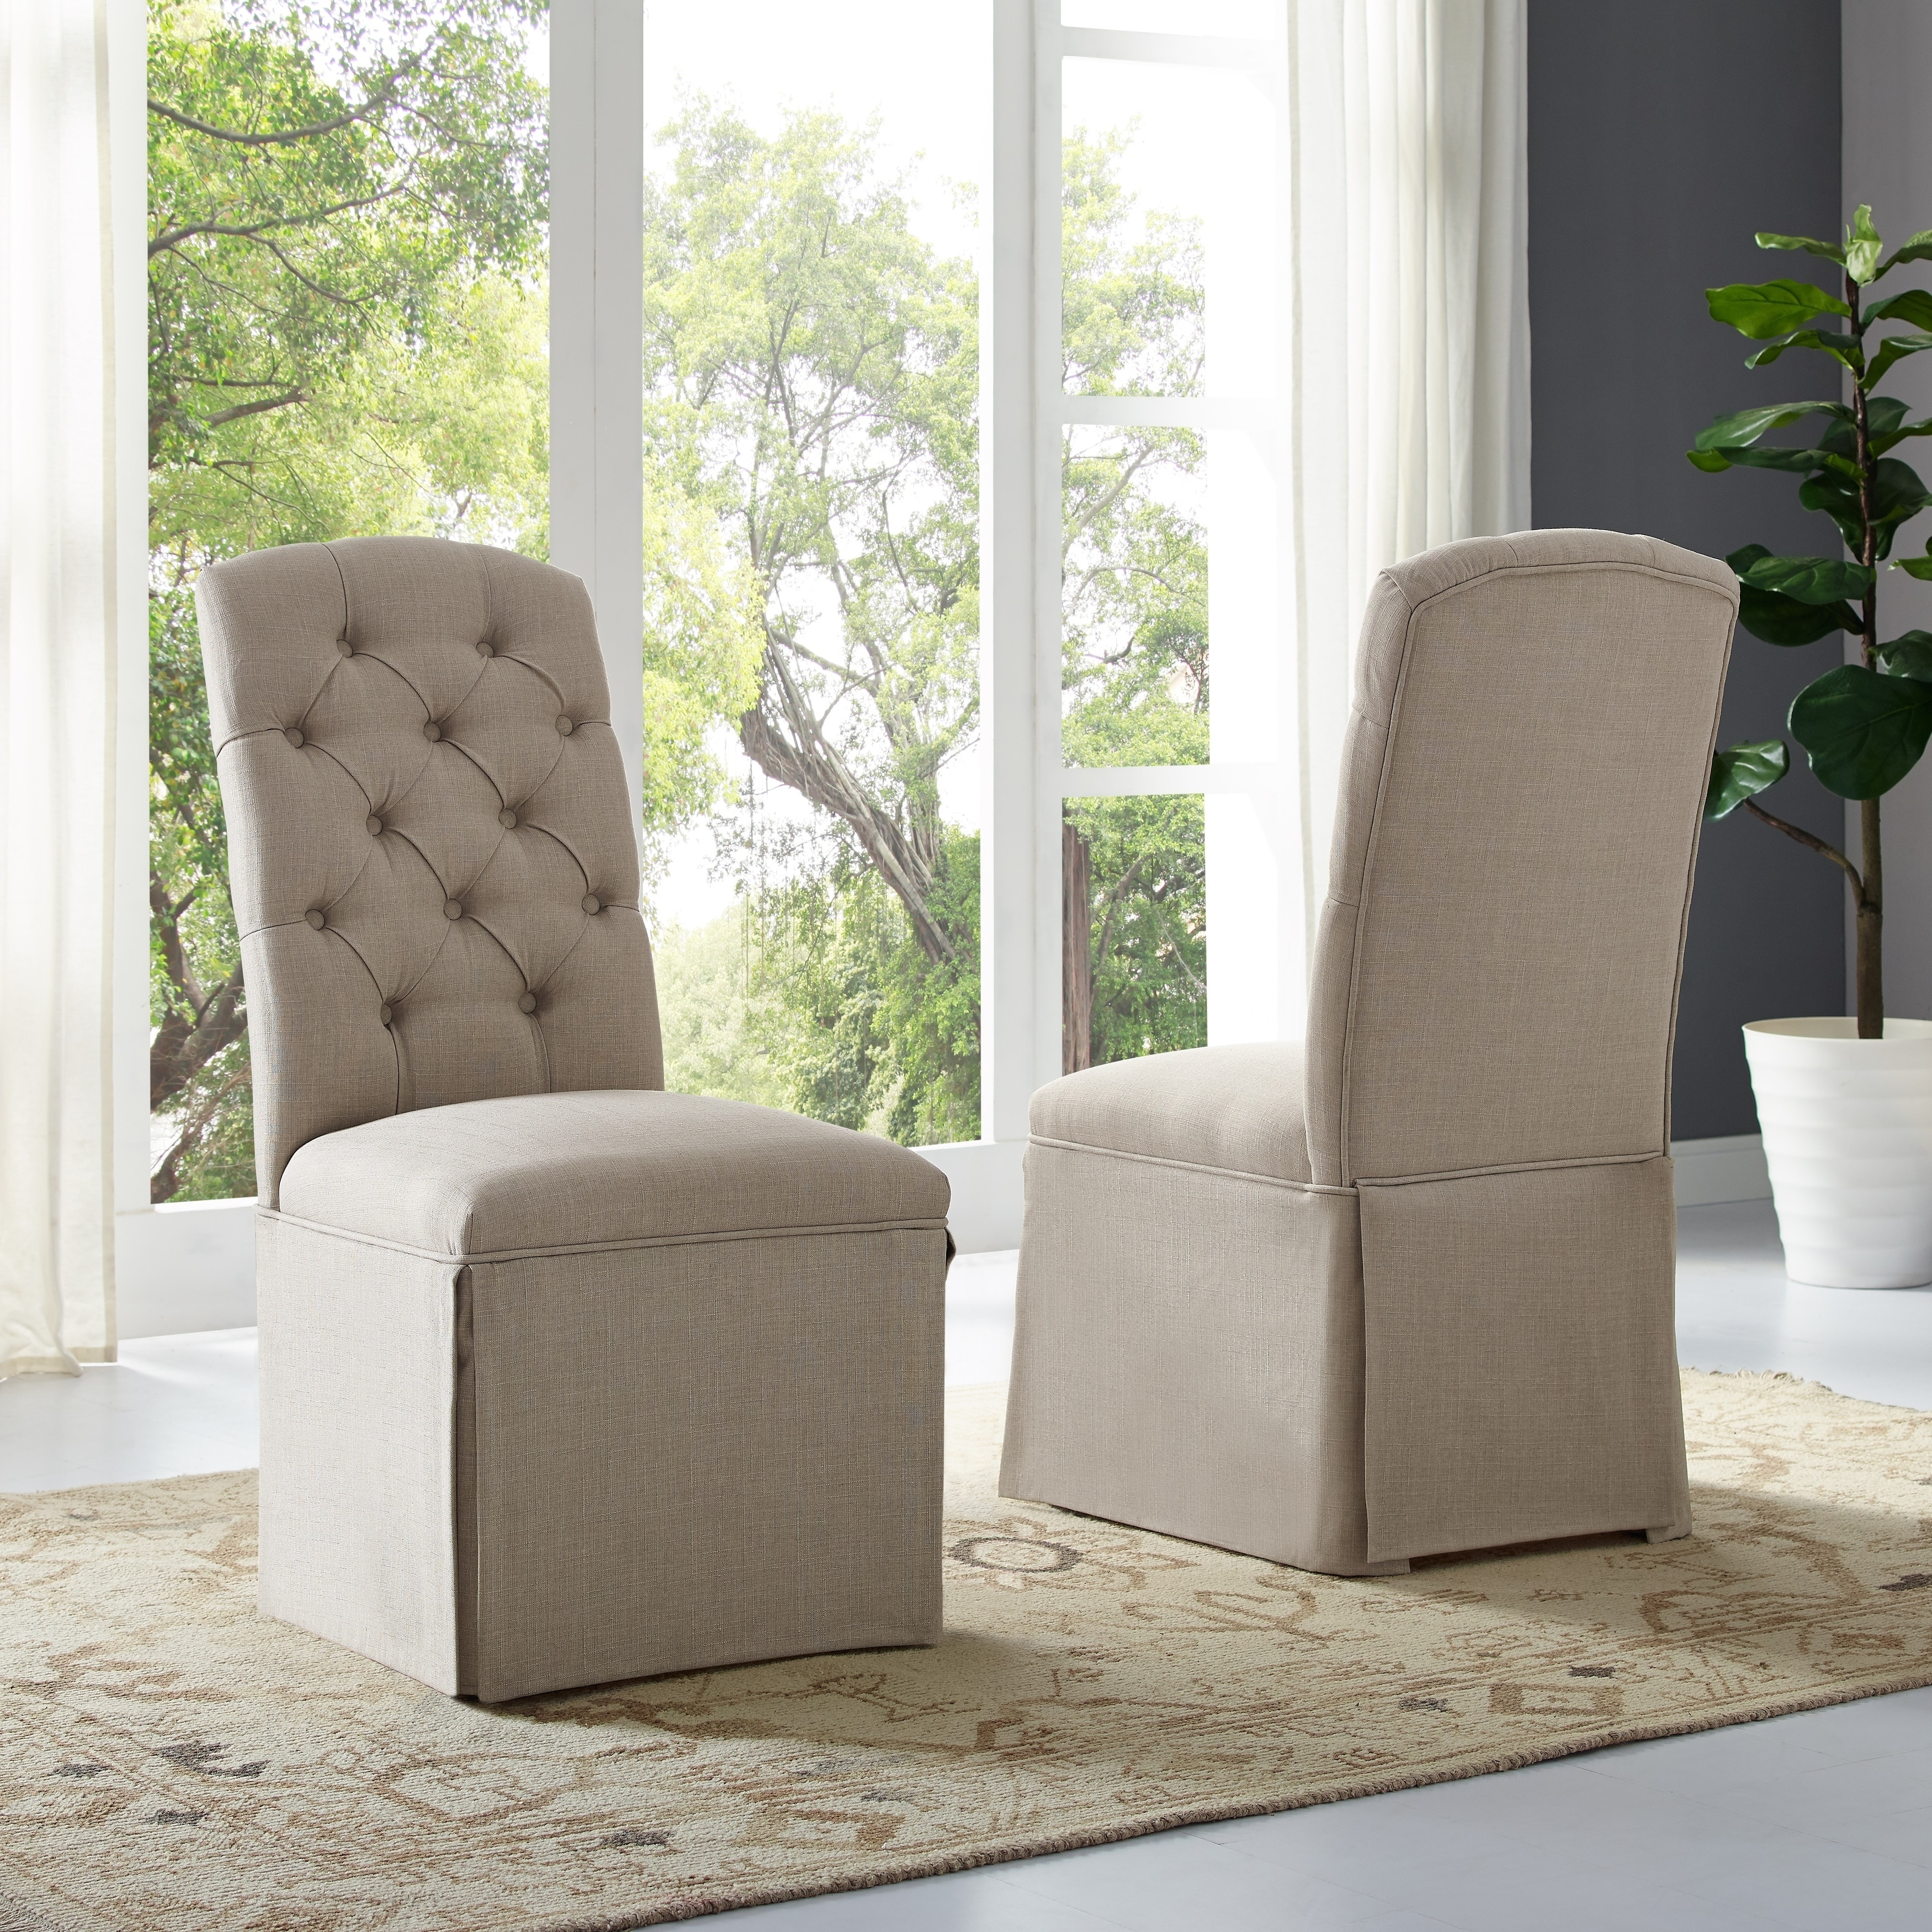 Sienna Tufted Dining Chair Set Of 2 Beige